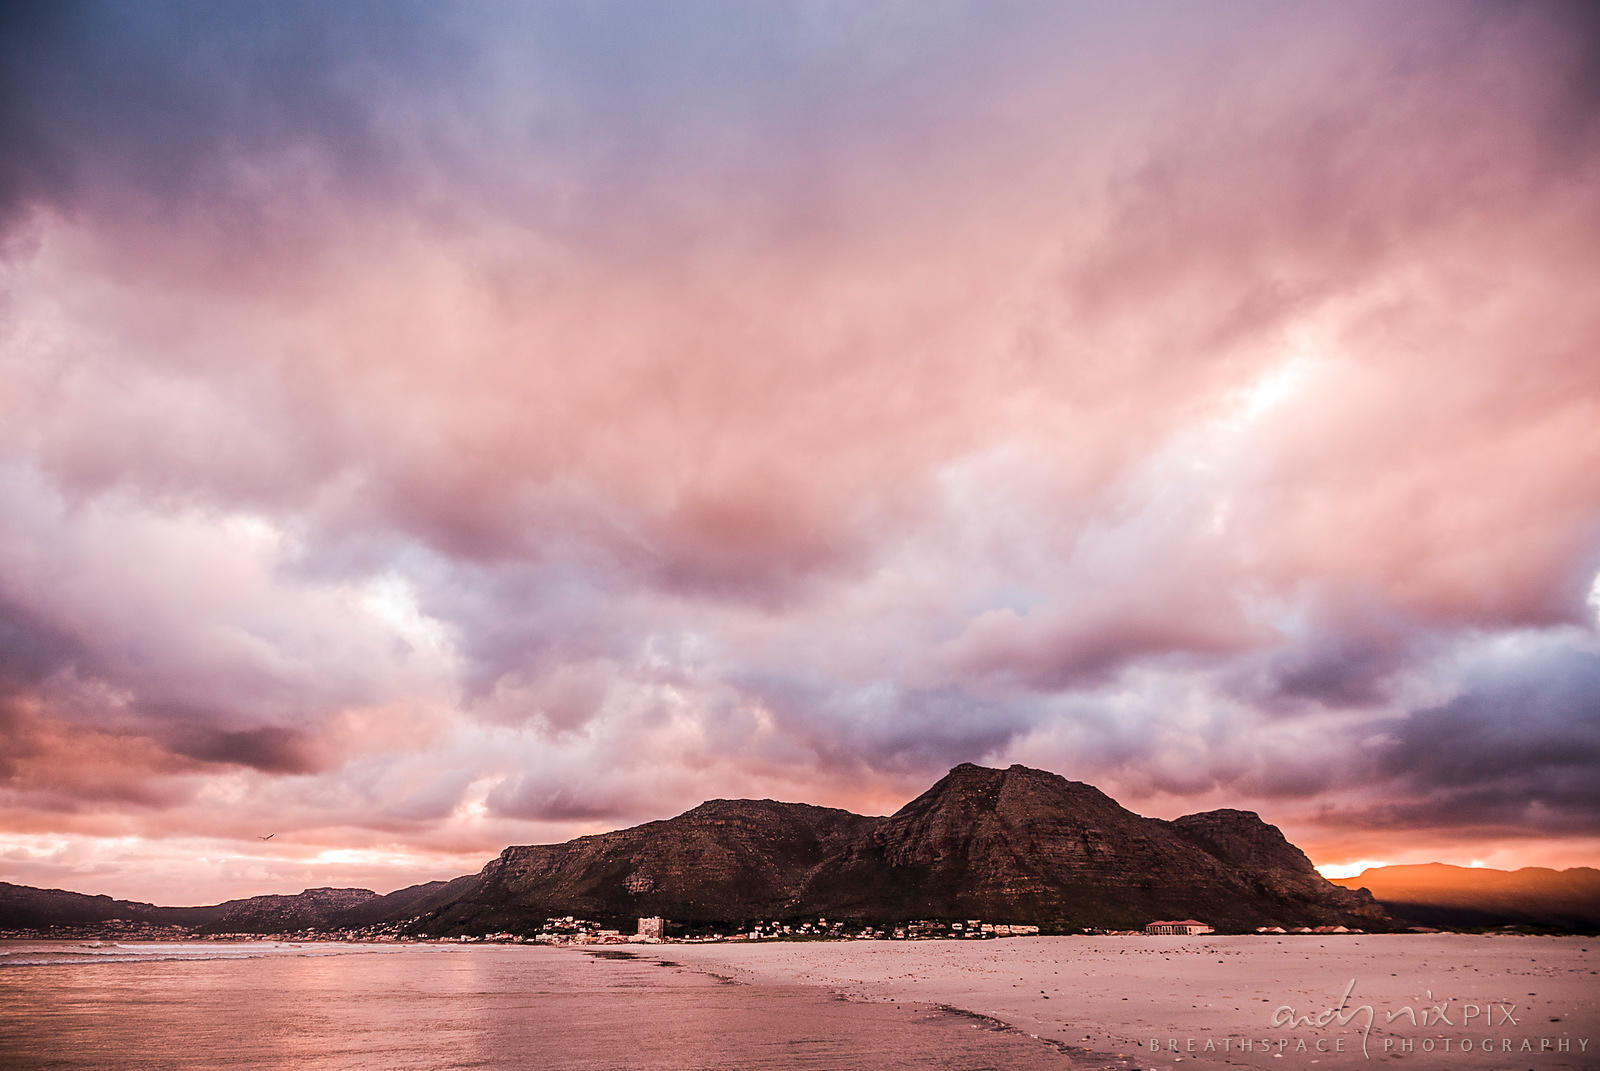 Clouds glow pink and purple over the mountain at sunset.